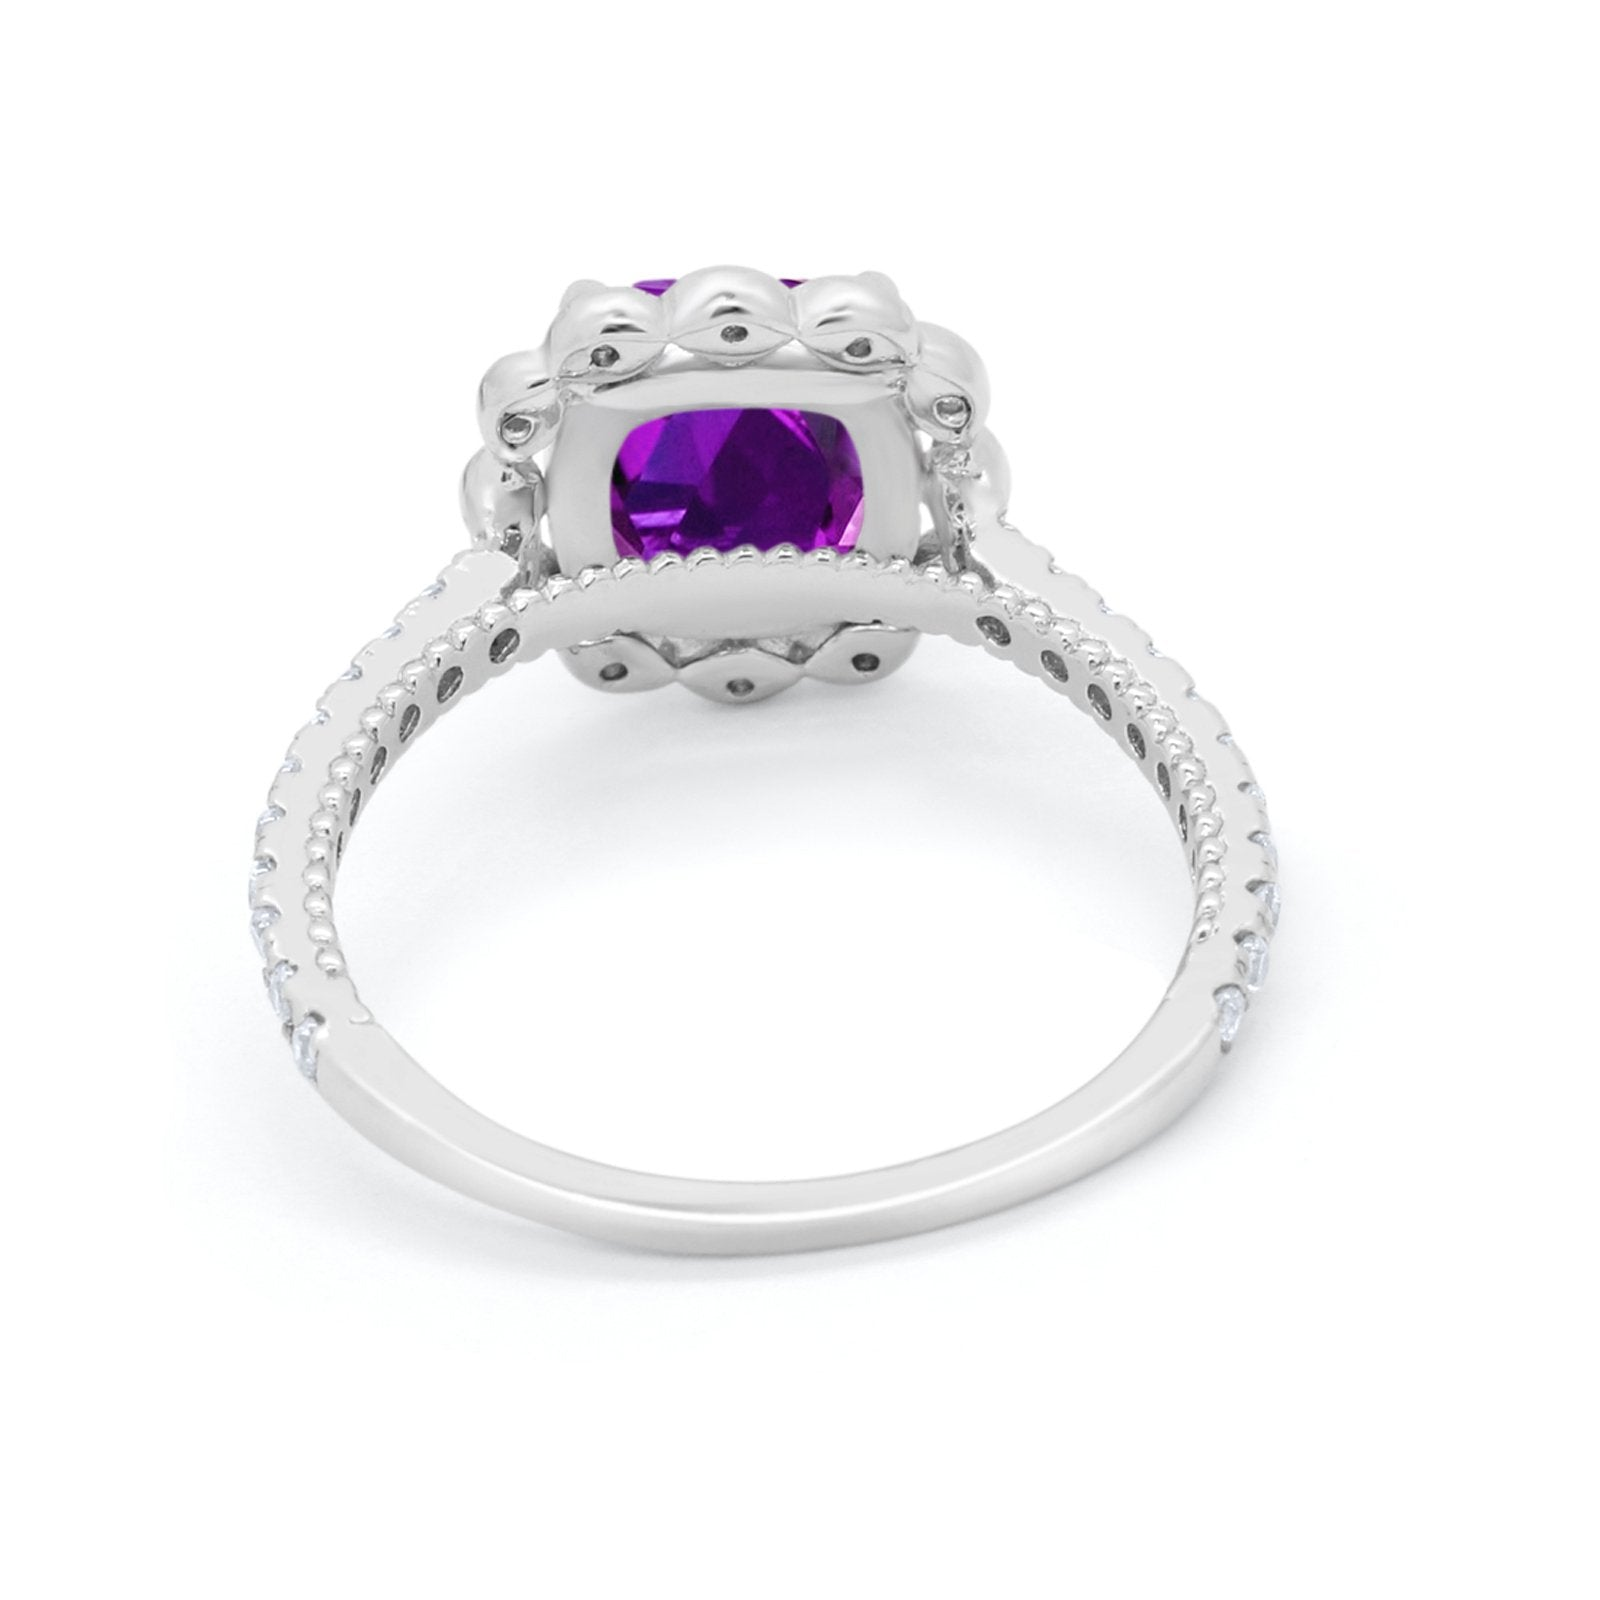 Halo Cushion Engagement Ring Simulated Amethyst CZ 925 Sterling Silver